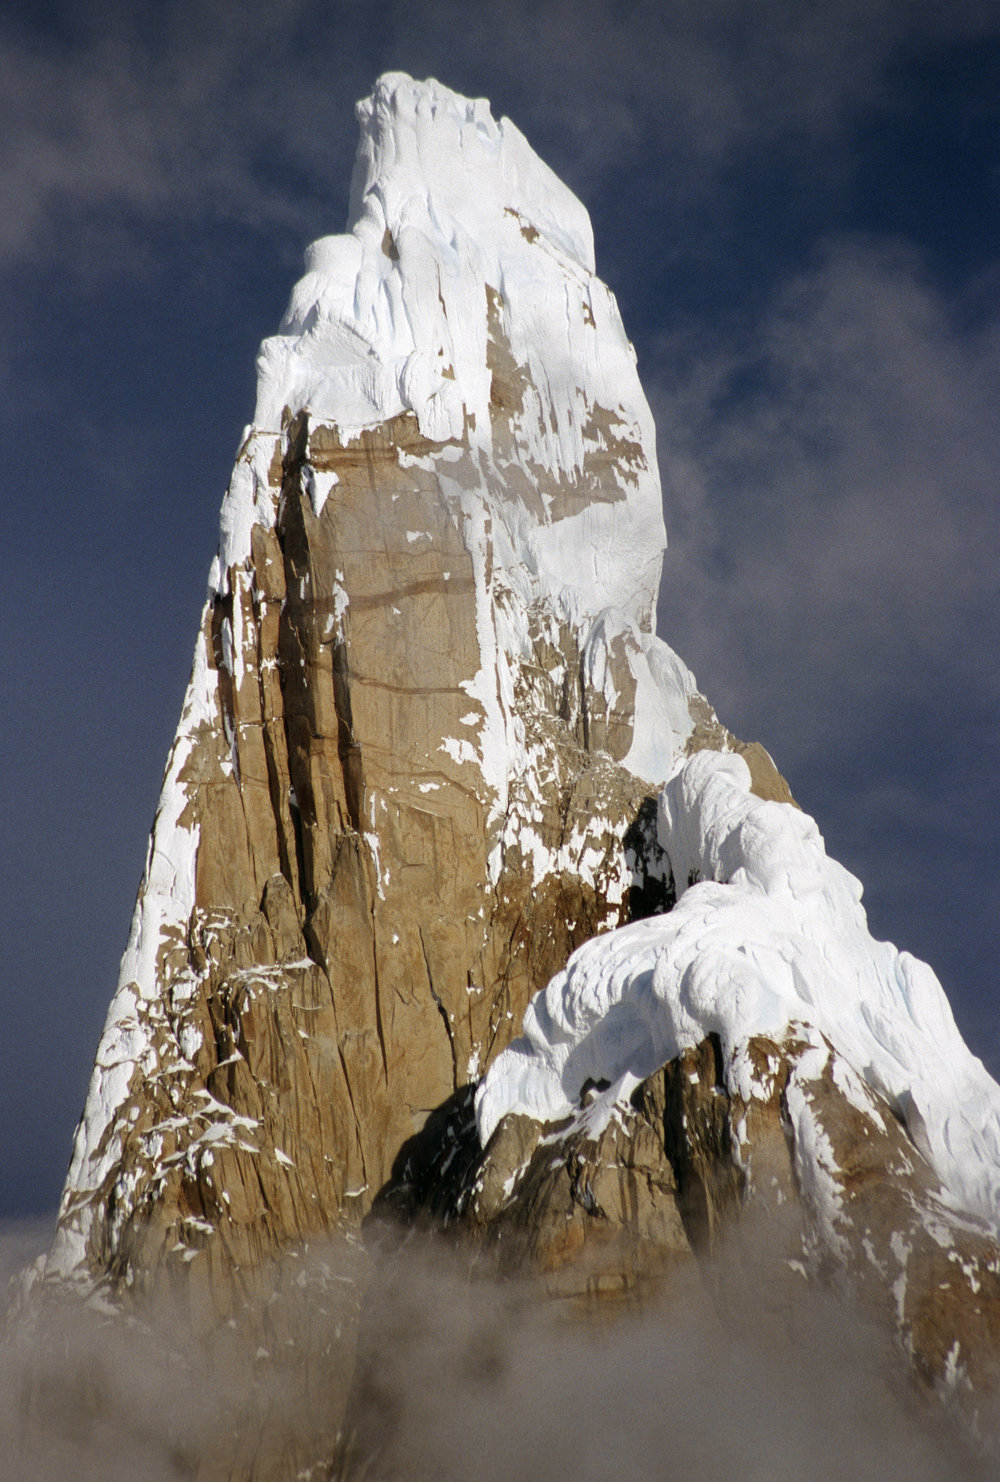 Summit snow mushrooms of Cerro Torre